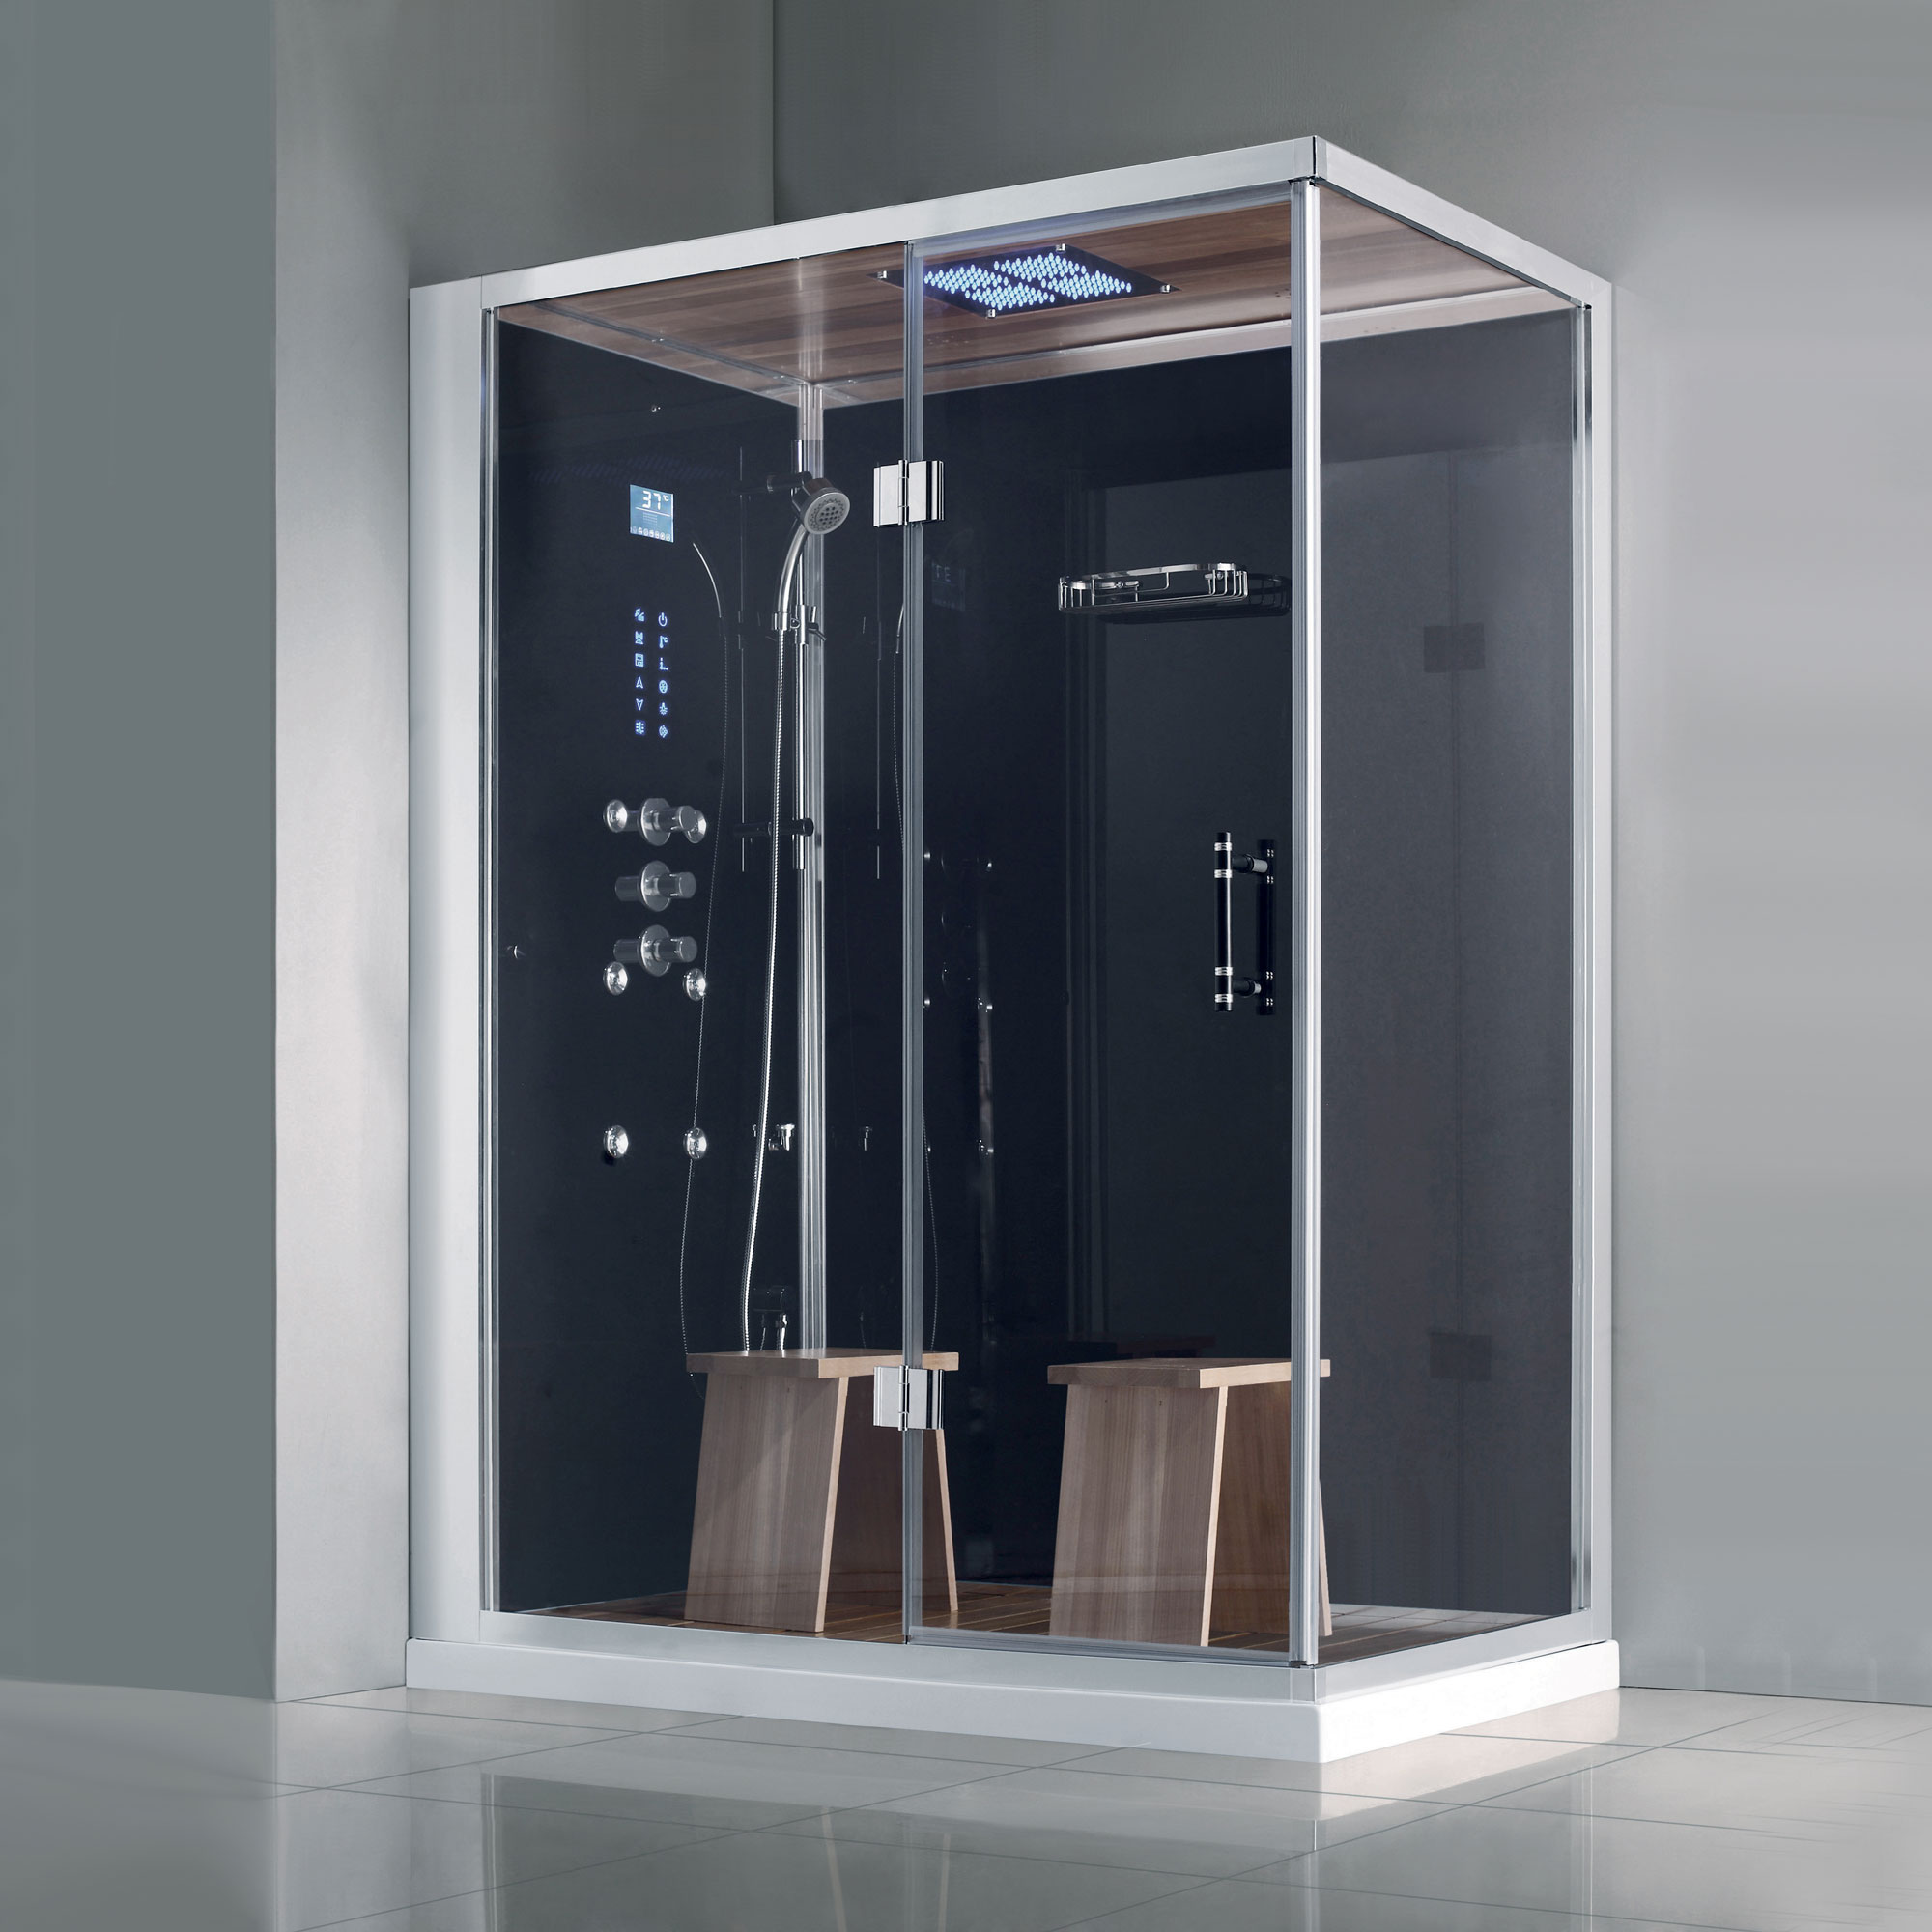 Athena WS141R steam shower, steam shower kit, steam cabin, luxury ...